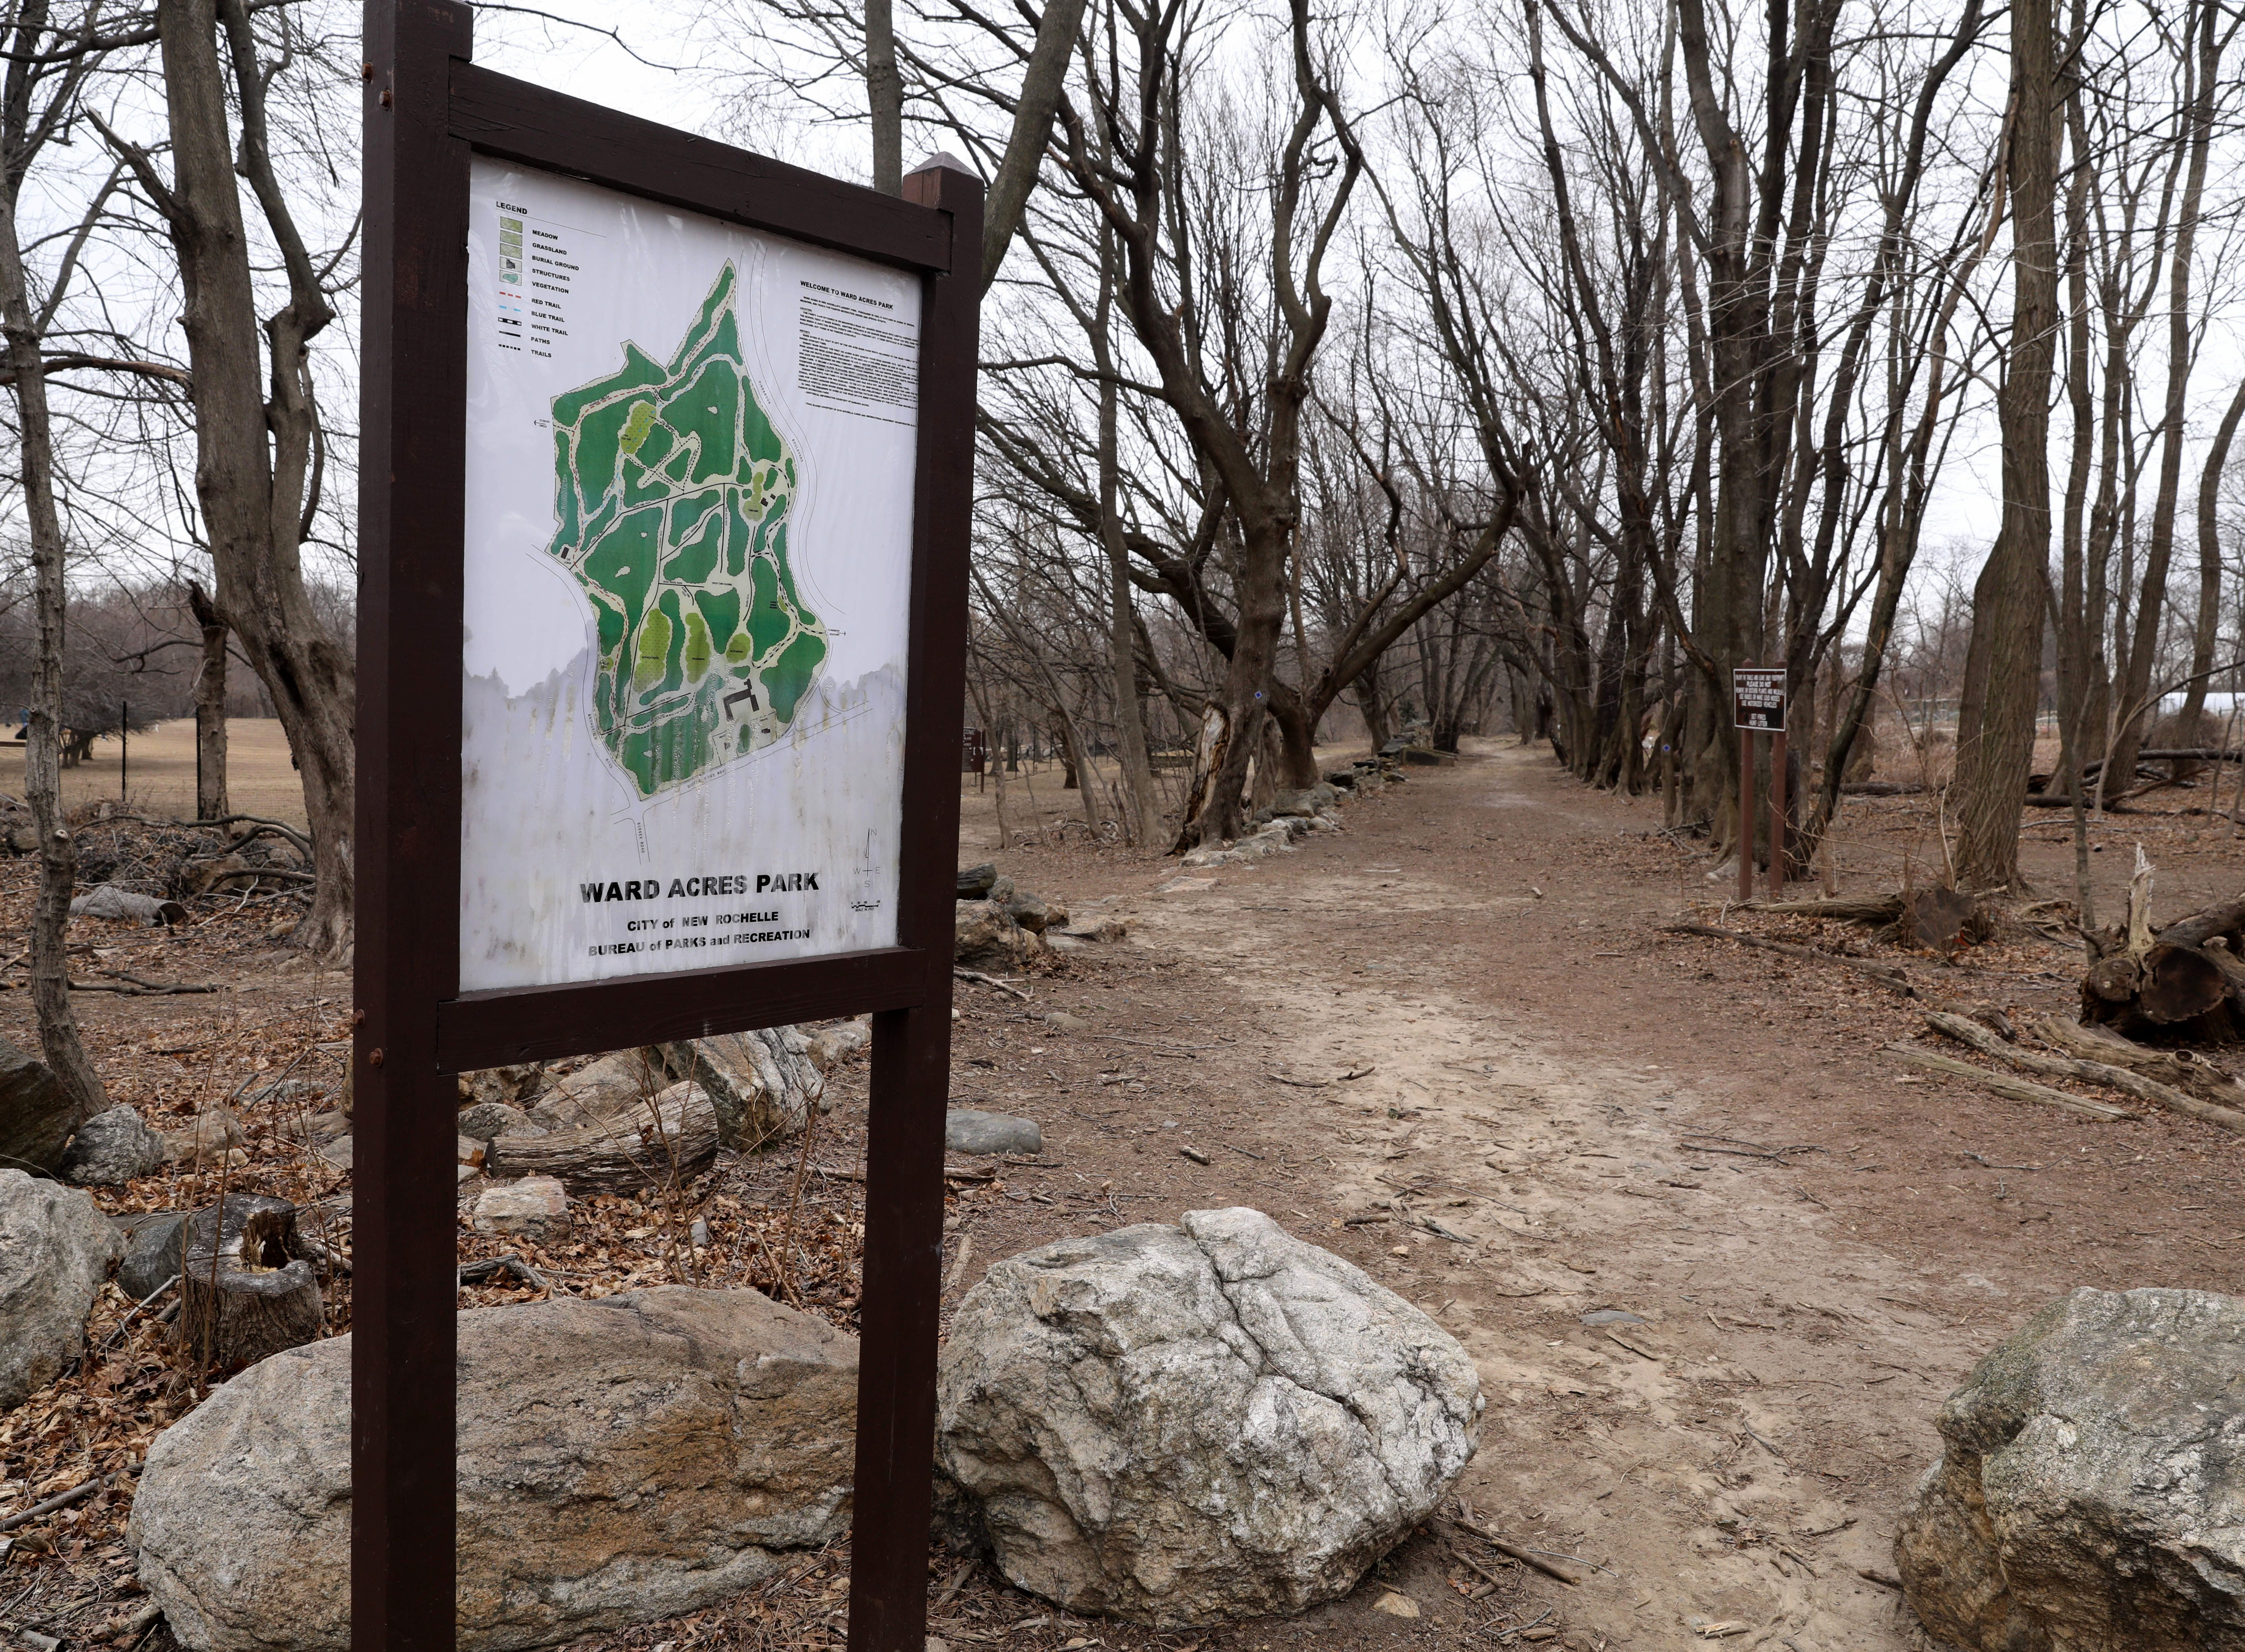 A map of Ward Acres Park in New Rochelle, greets visitors to the park, Feb. 27, 2019.